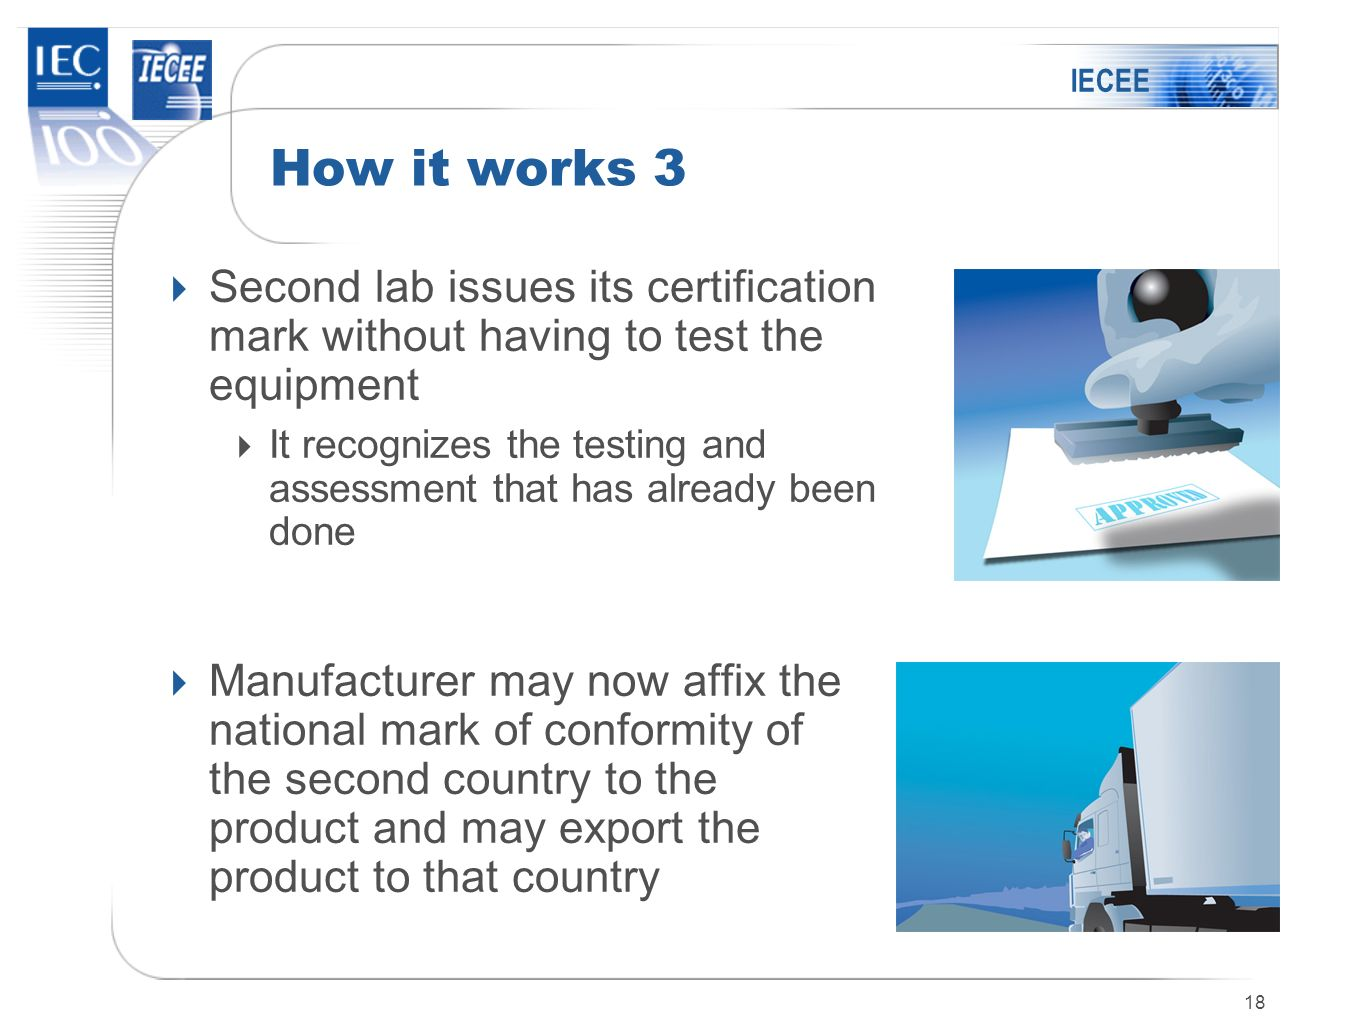 IECEE How it works 3. Second lab issues its certification mark without having to test the equipment.